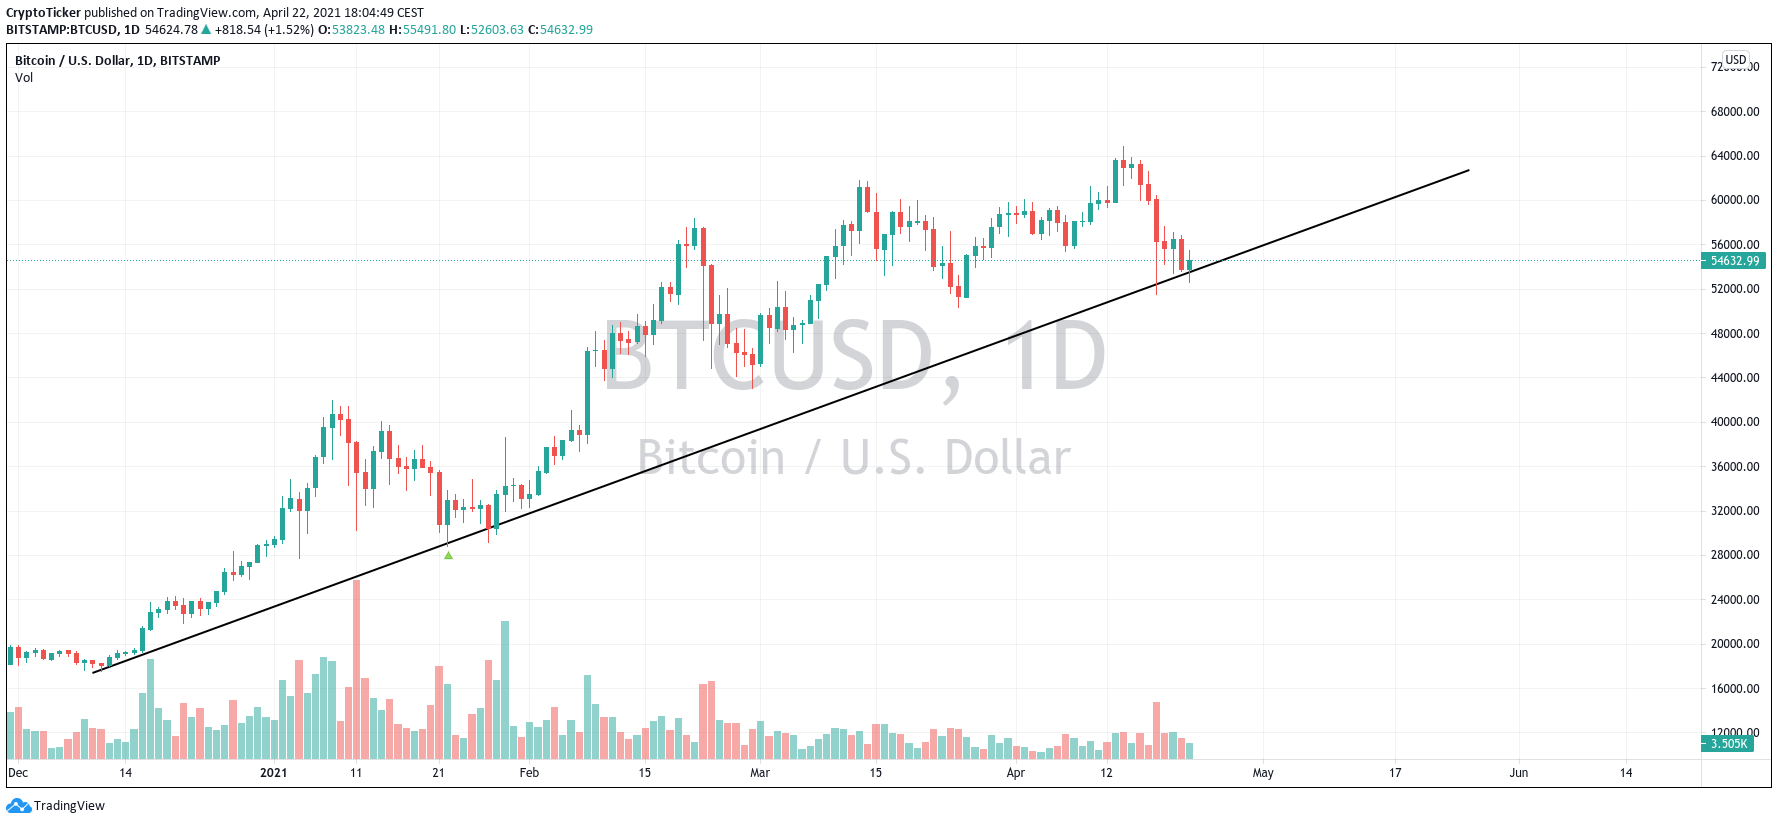 BTC/USD 1-day chart showing BTC's uptrend since the beginning of 2021